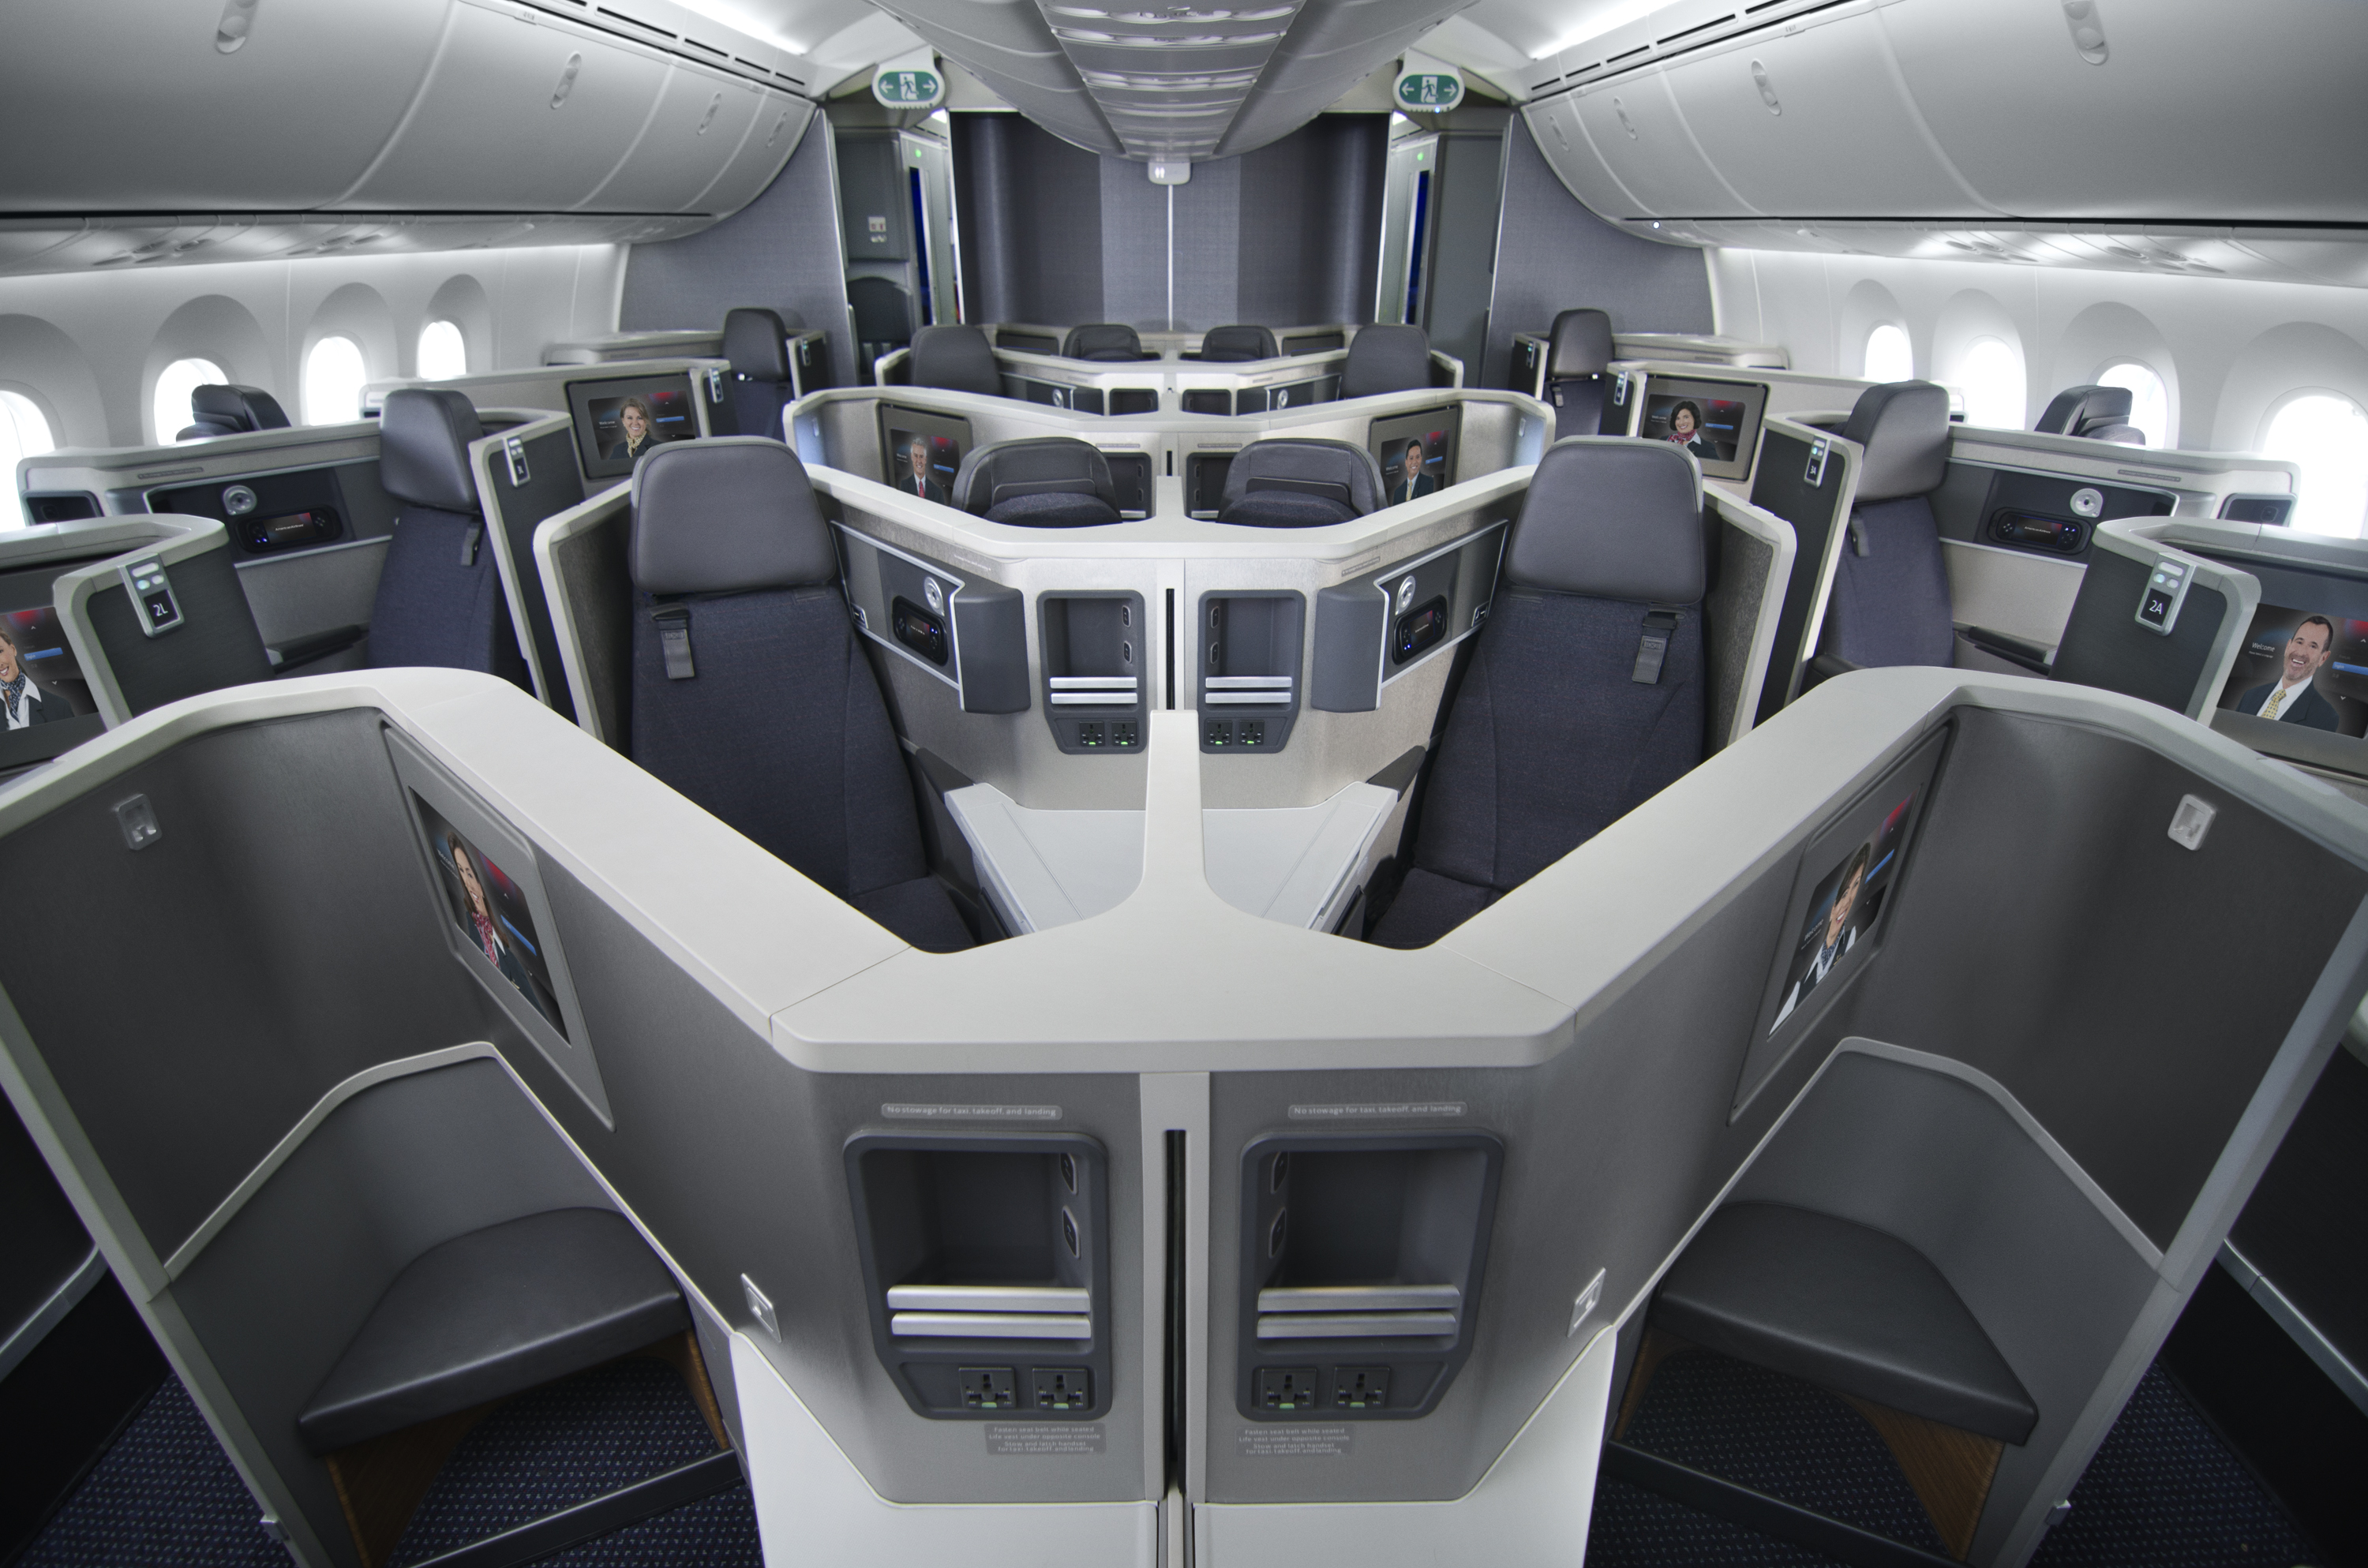 American Airlines Boeing 787-8 Business Class